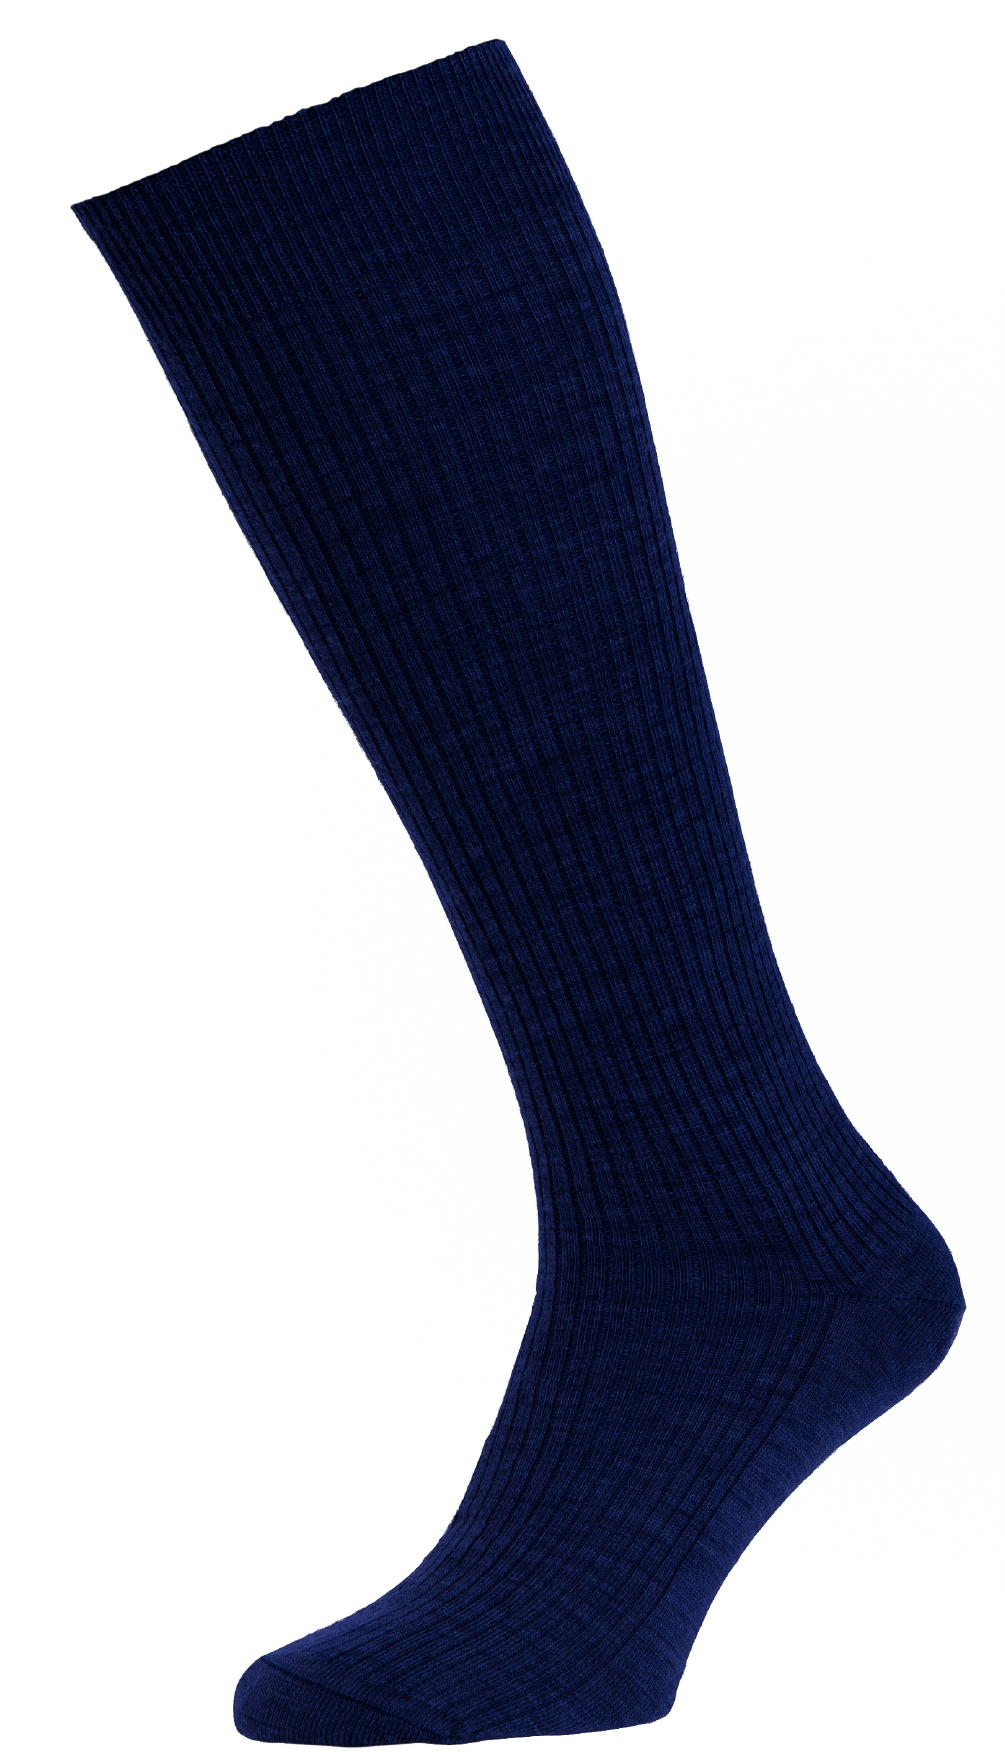 HJ Hall Immaculate Long Knee length Mens Socks size 6-11UK Navy HJ77